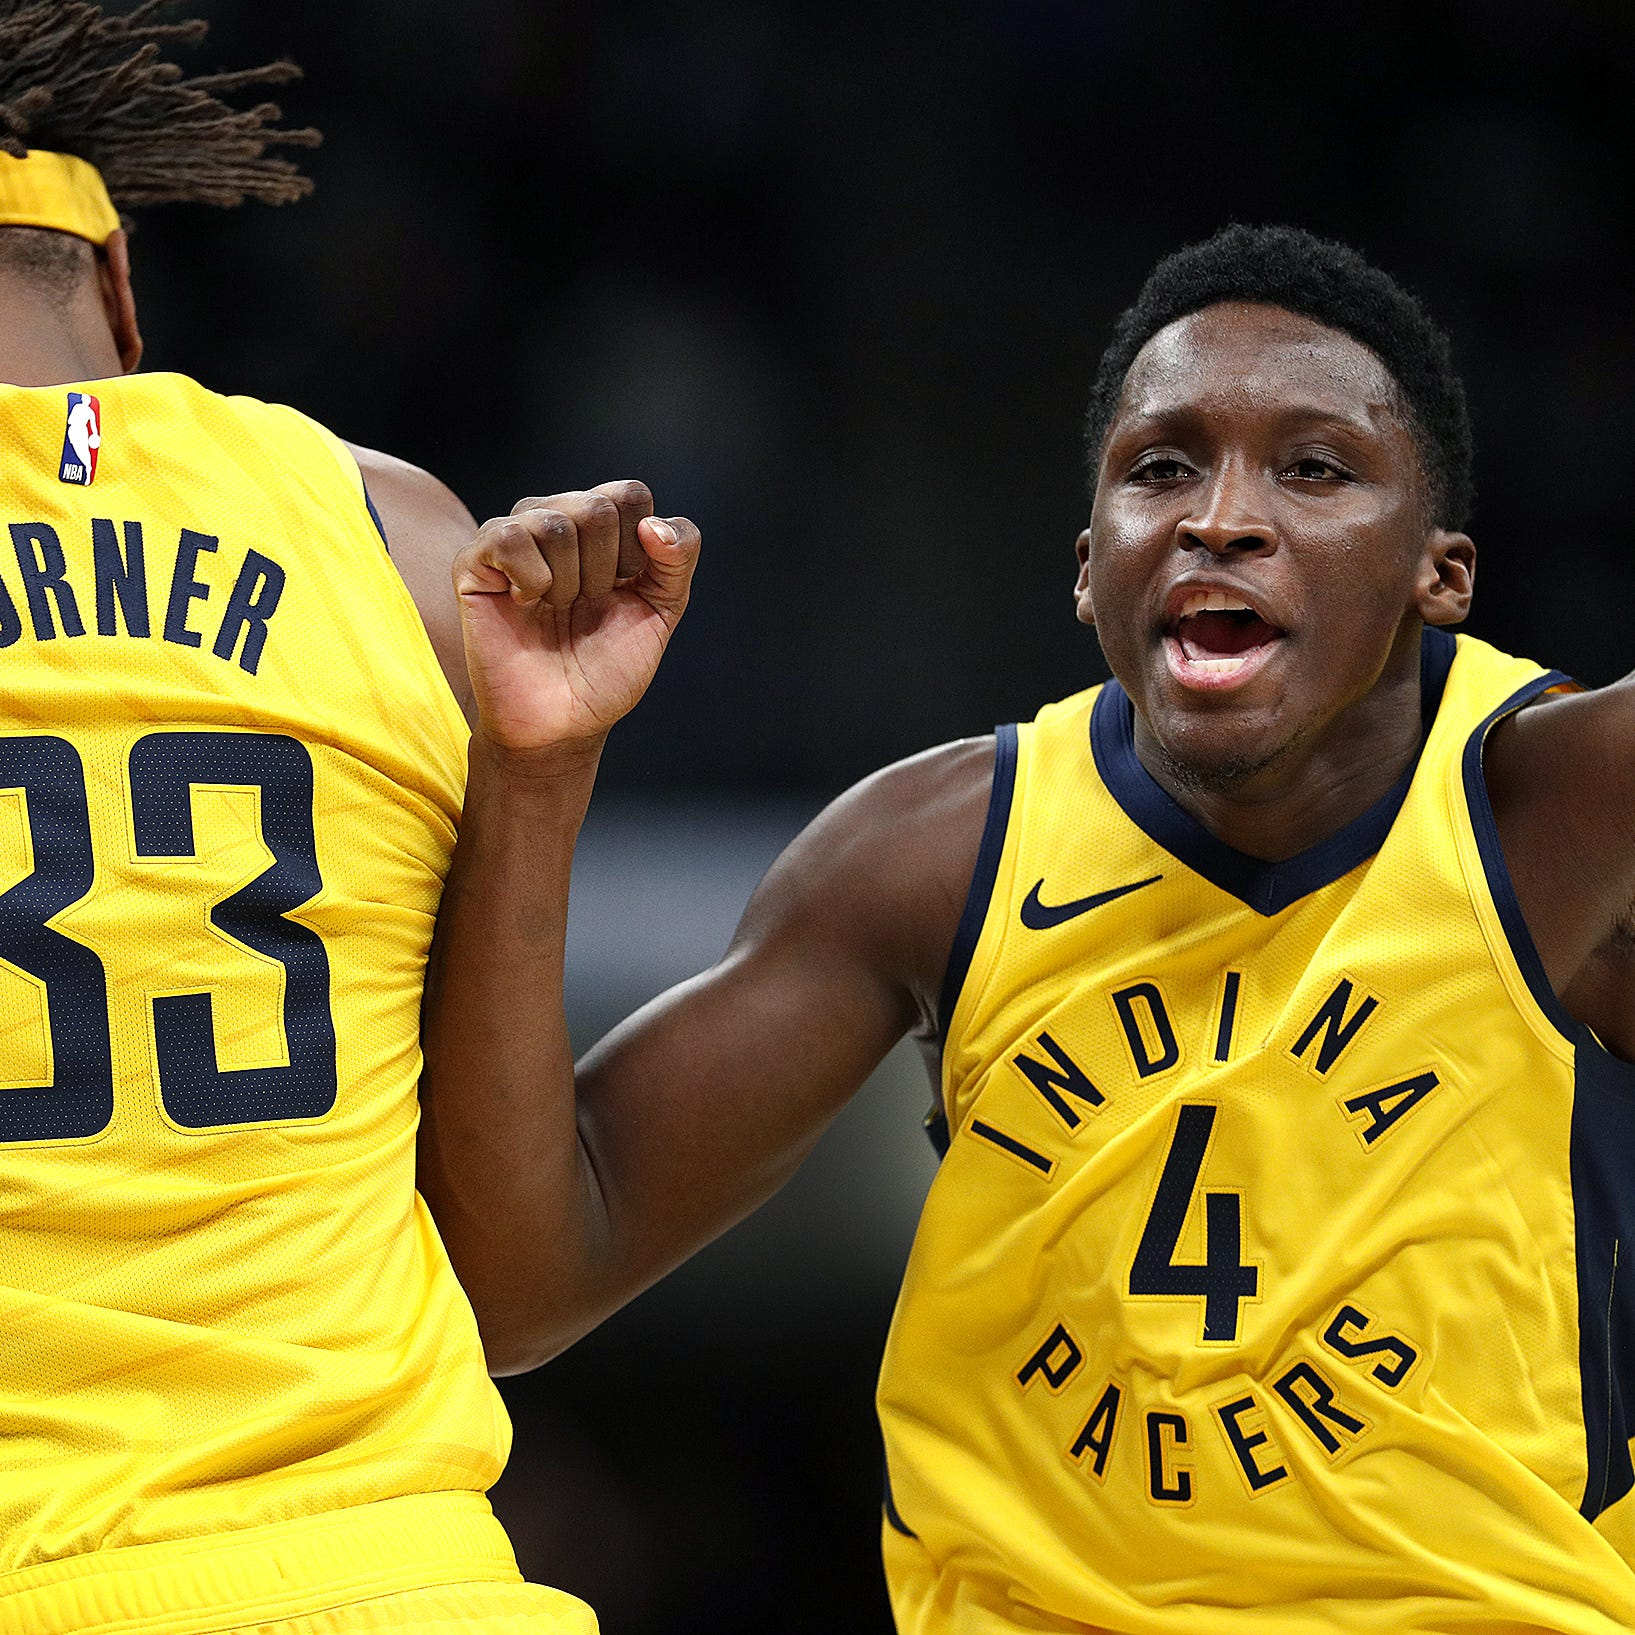 Victor Oladipo offers impassioned defense of Myles Turner after tough night